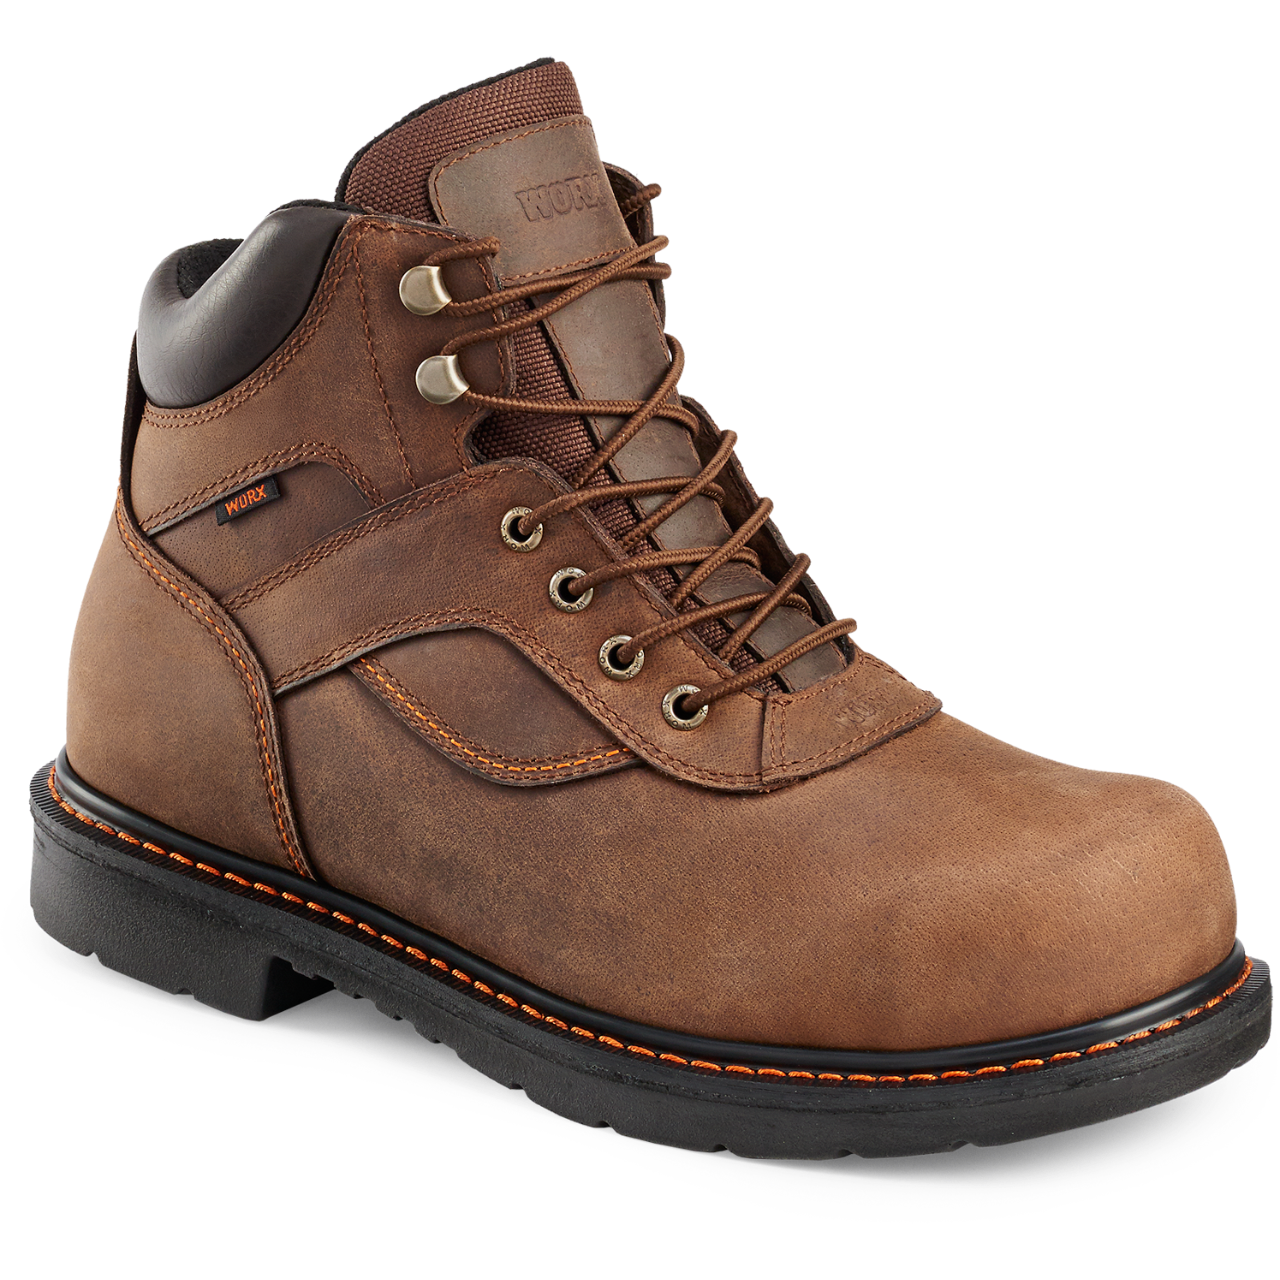 Worx 5605  Steel Toe - Electrical Hazard  Click here for specifications